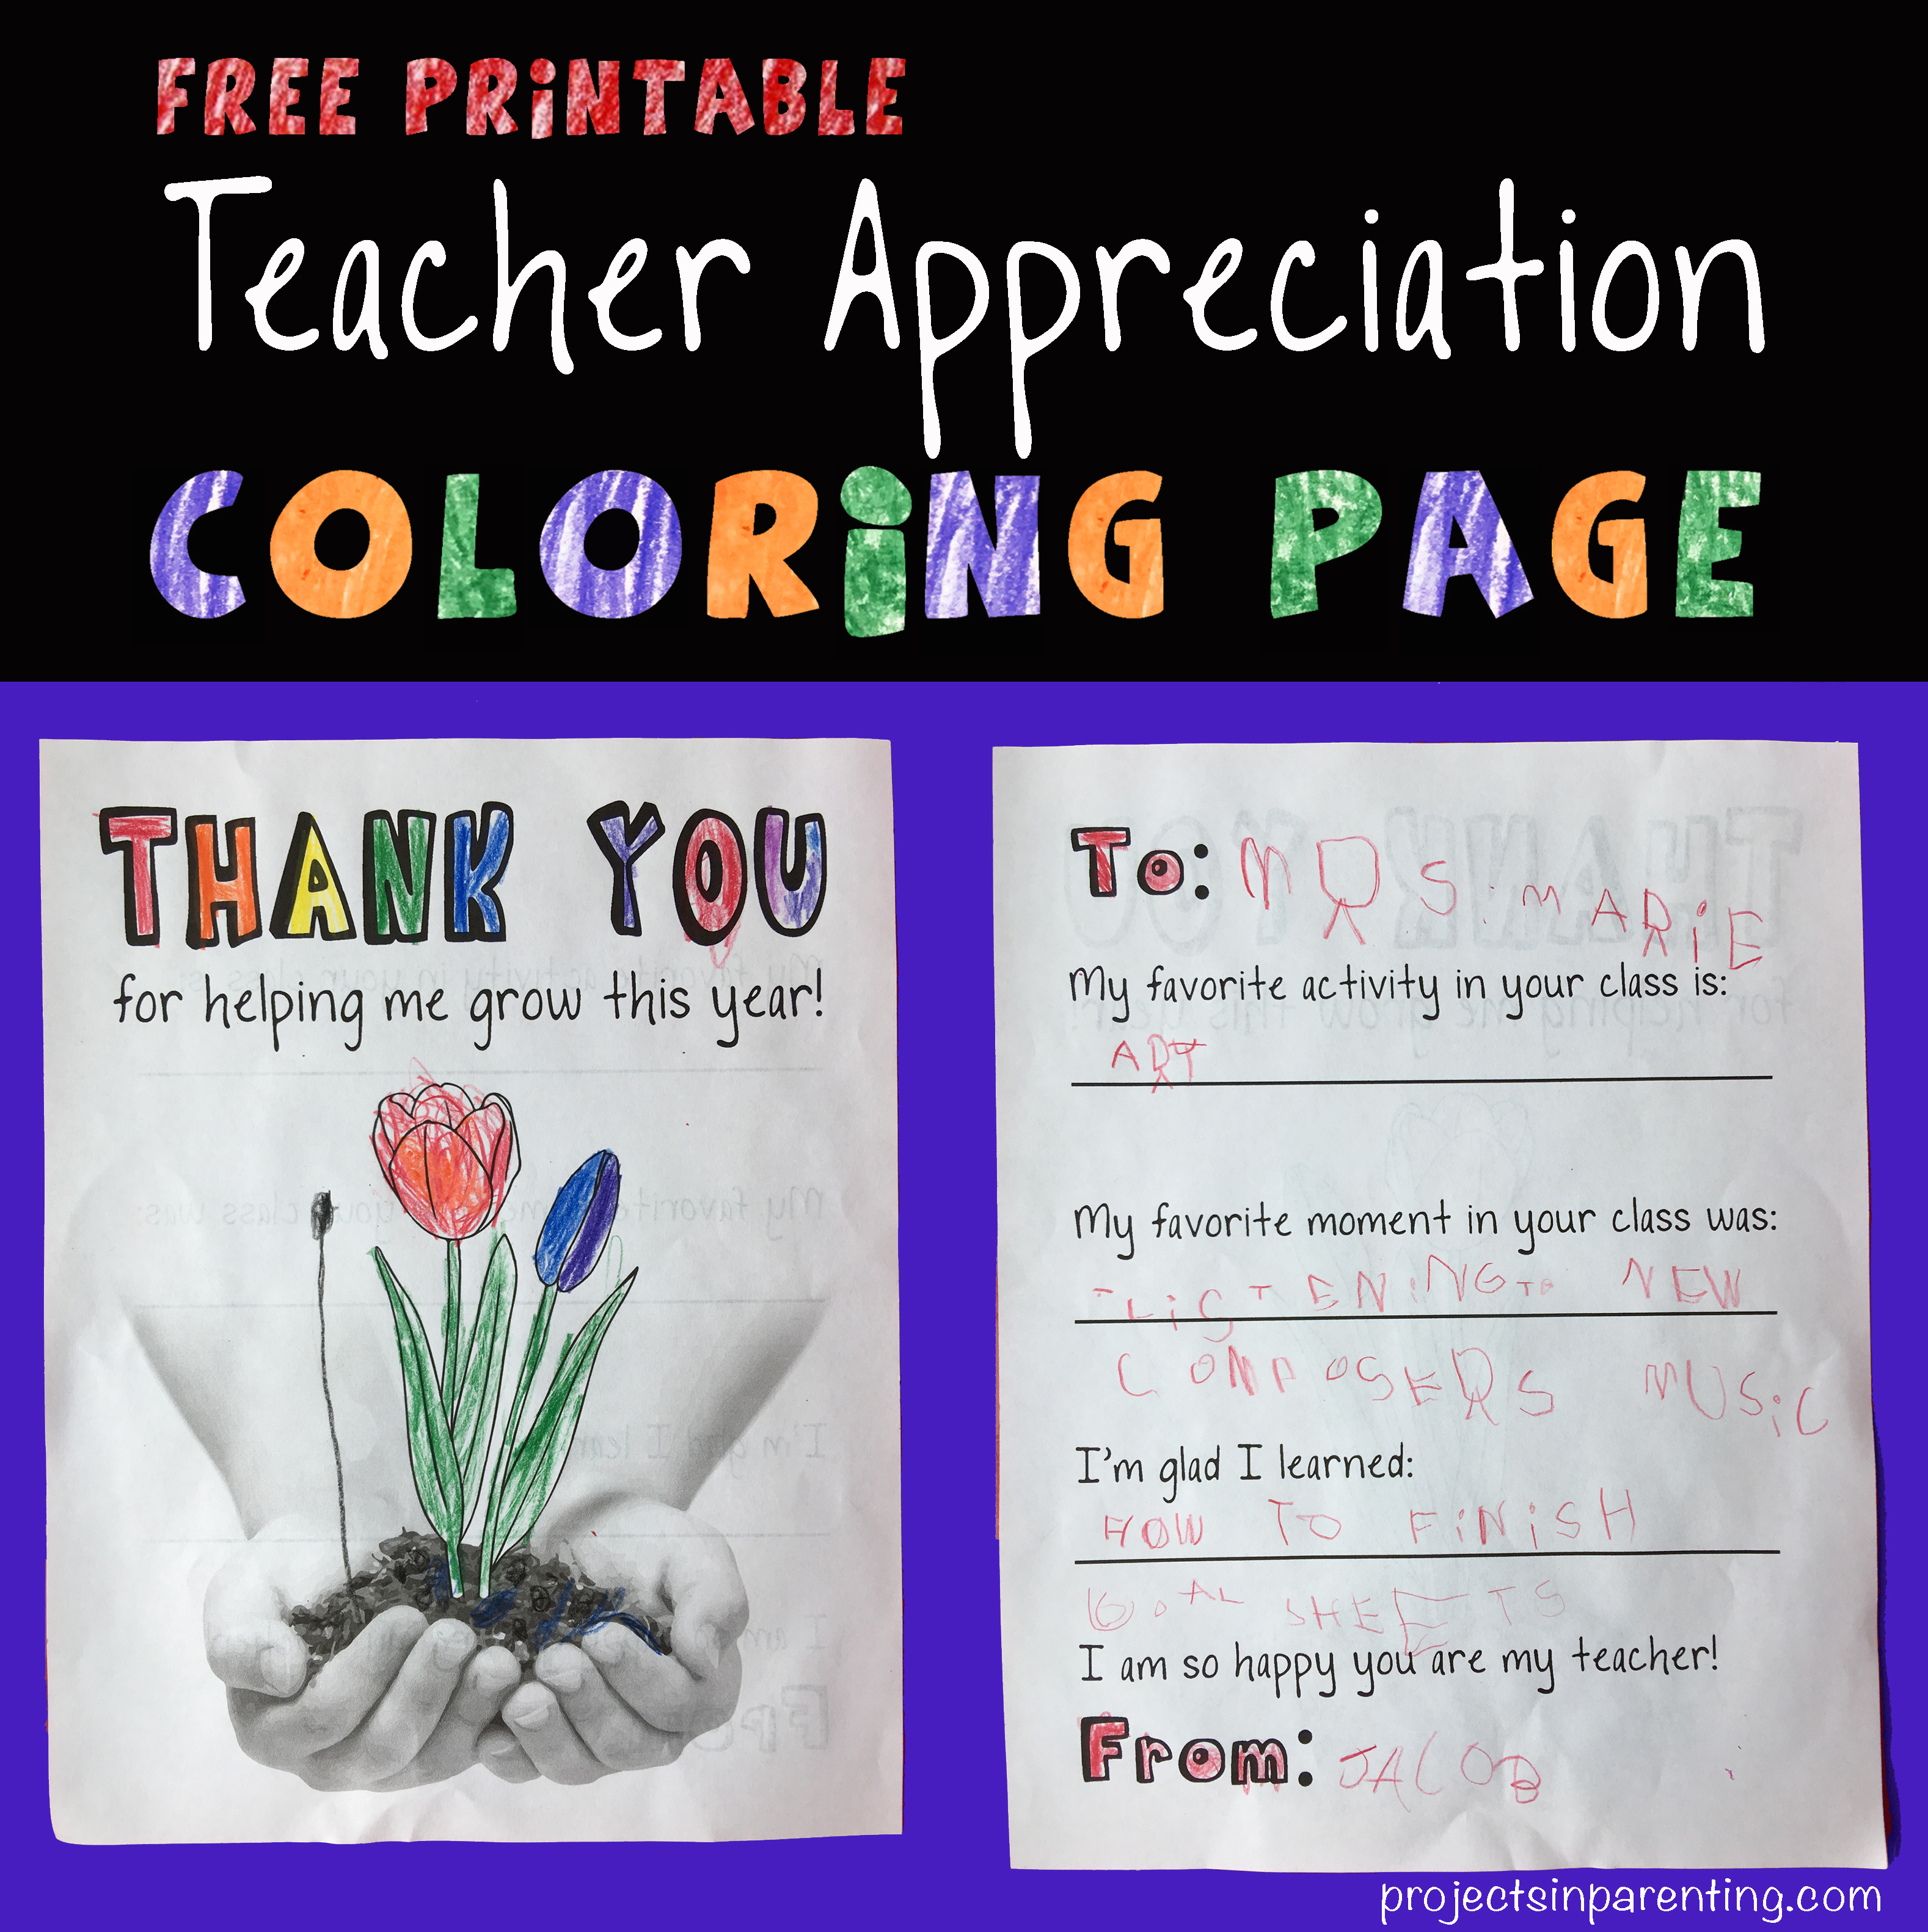 graphic about Thank You for Helping Me Grow Free Printable called Instructor Appreciation Coloring Website page Initiatives Within Parenting